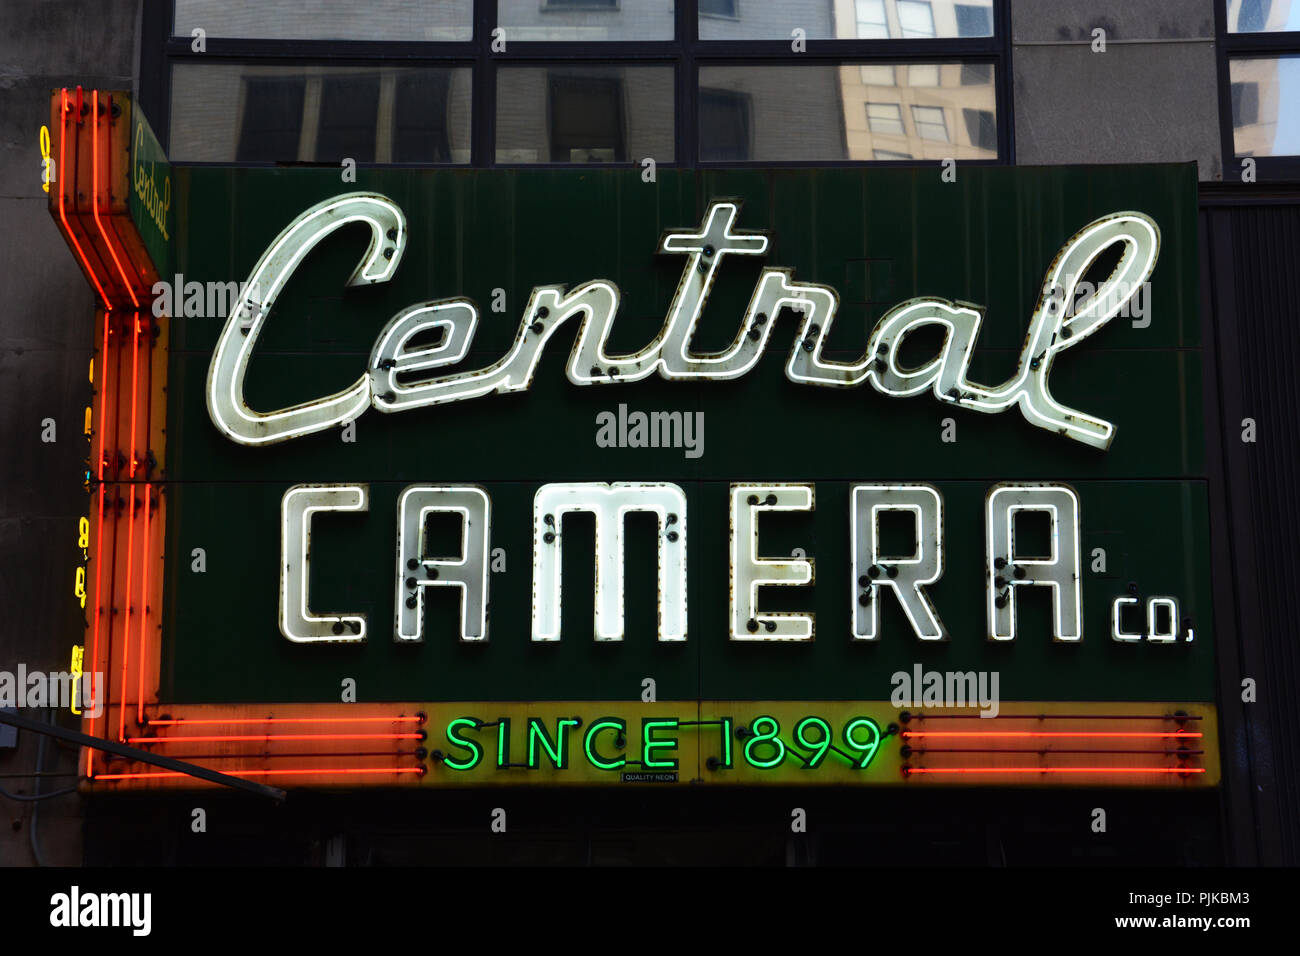 Central Camera has sold photographic equipment and services in Chicago's South Loop since 1899 and is the cities oldest camera store. - Stock Image